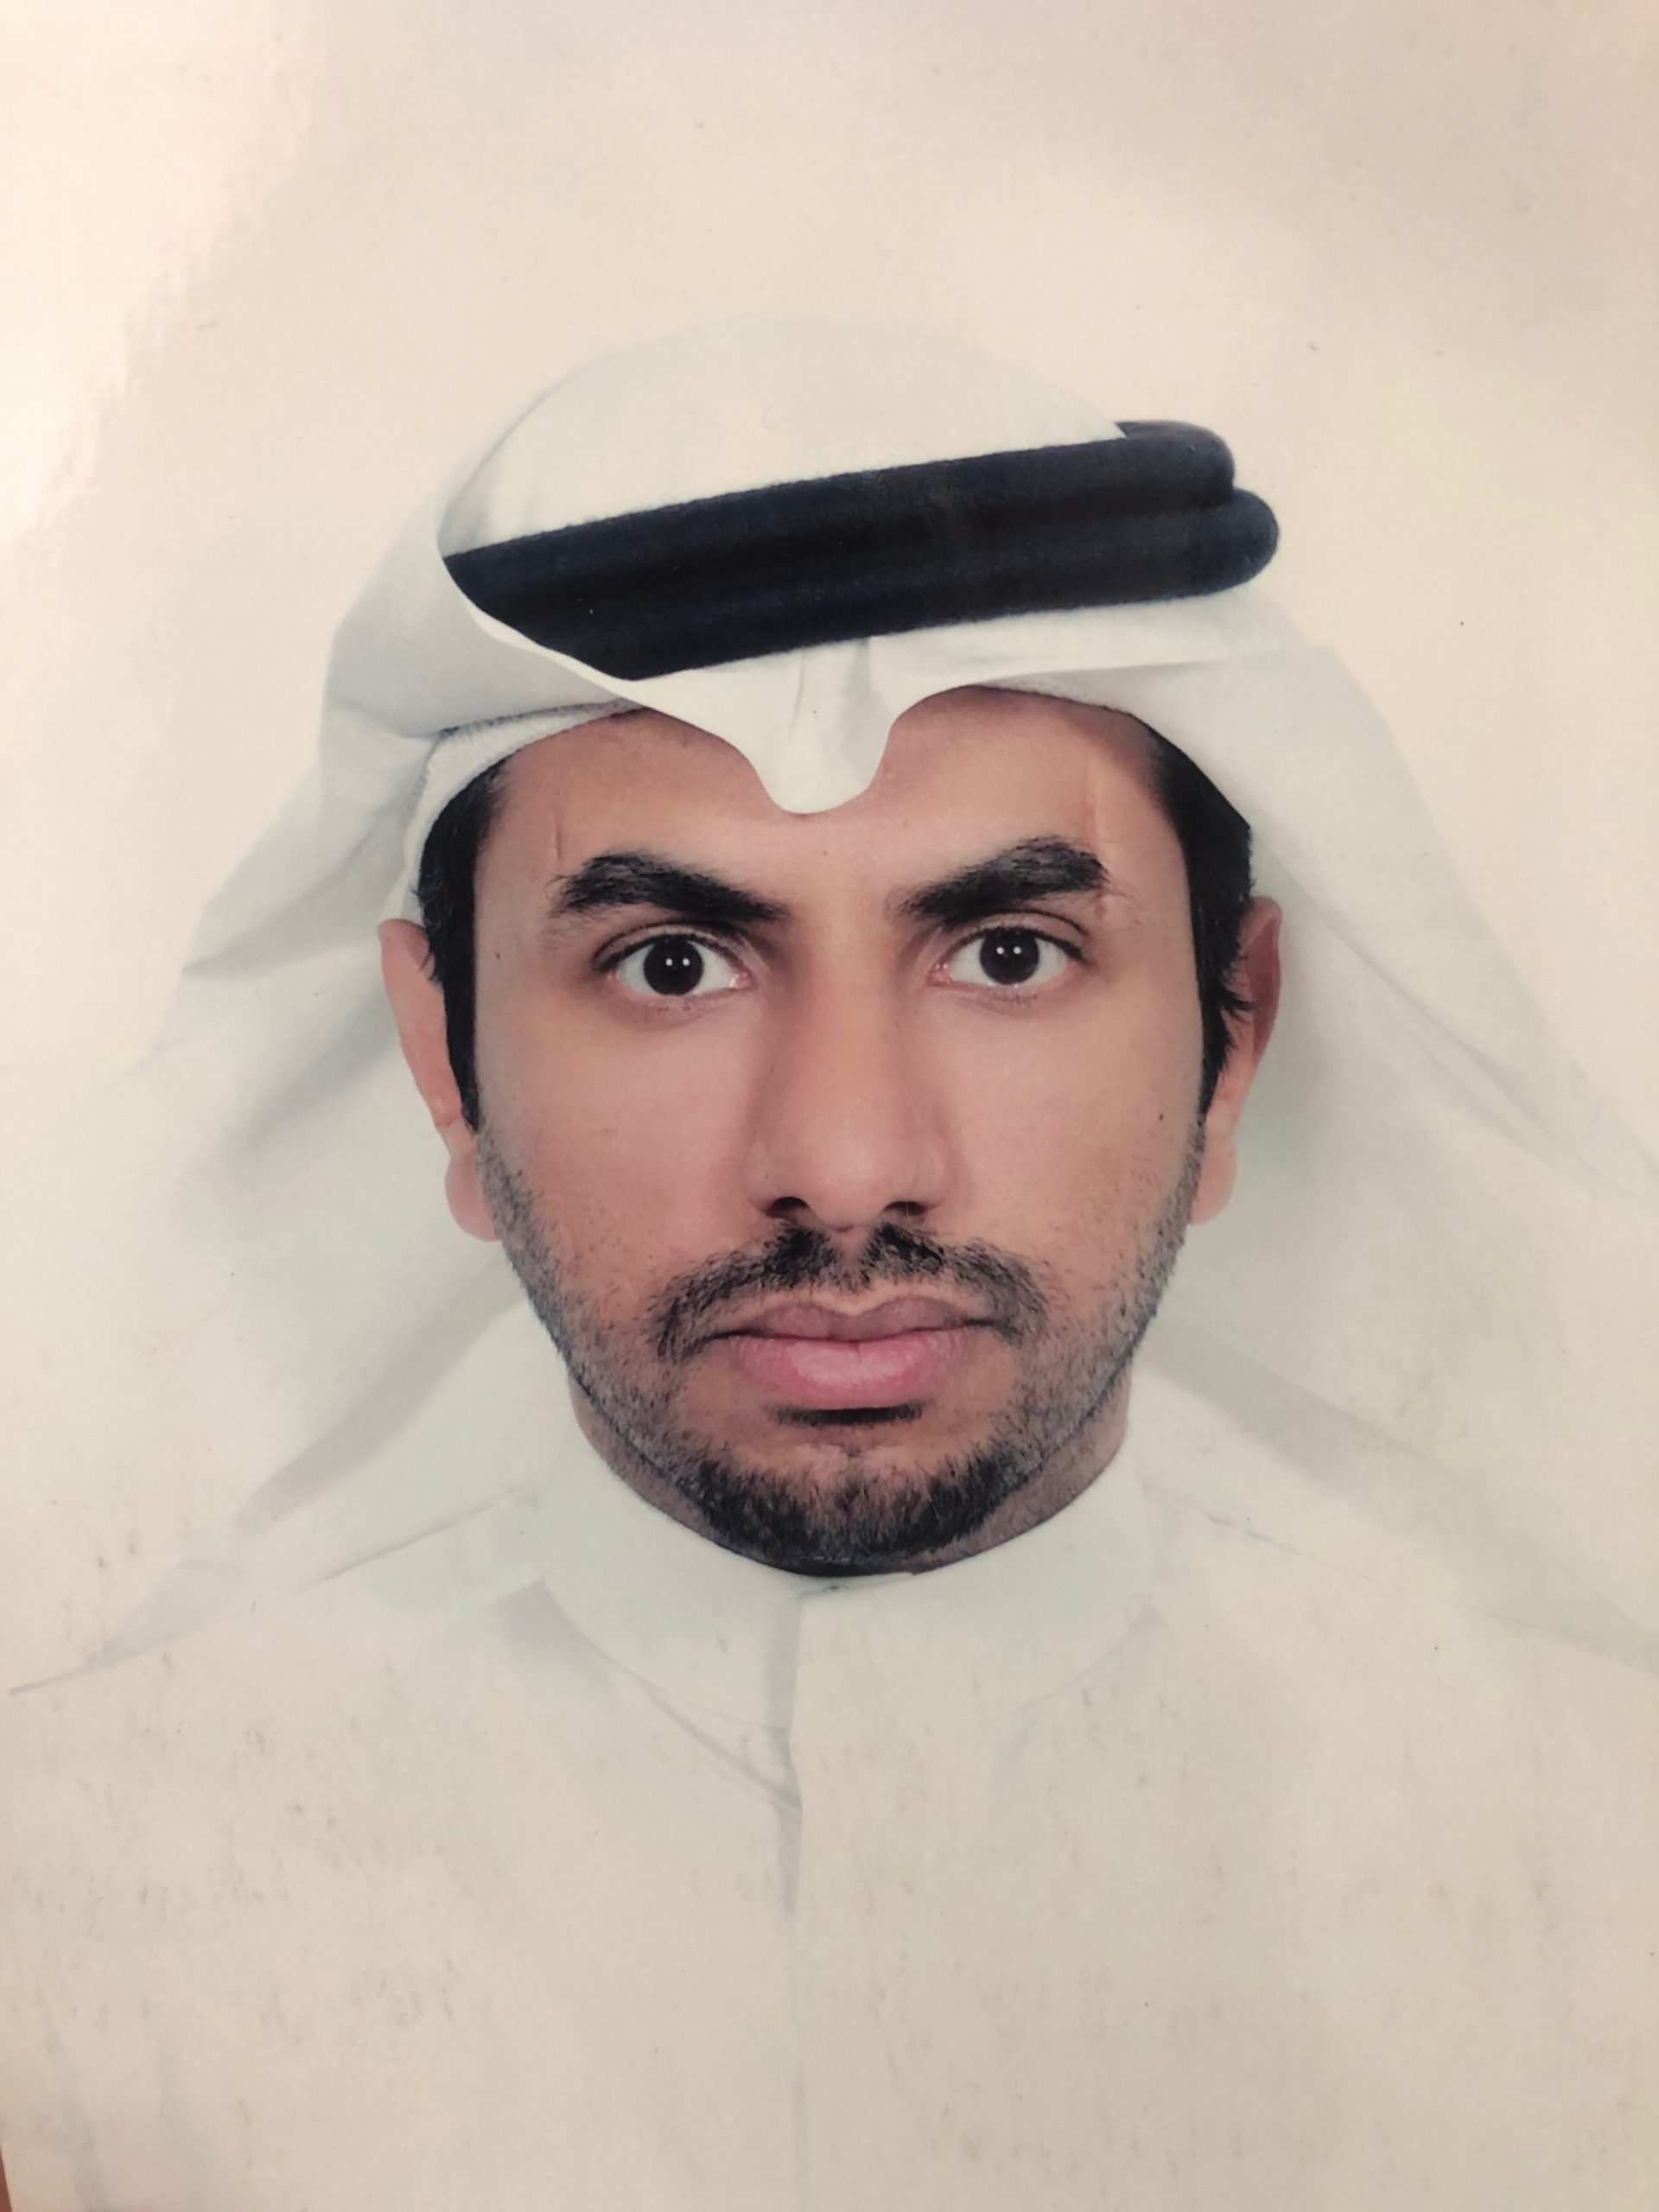 Mr. Mohammed Almohanna Profile Image